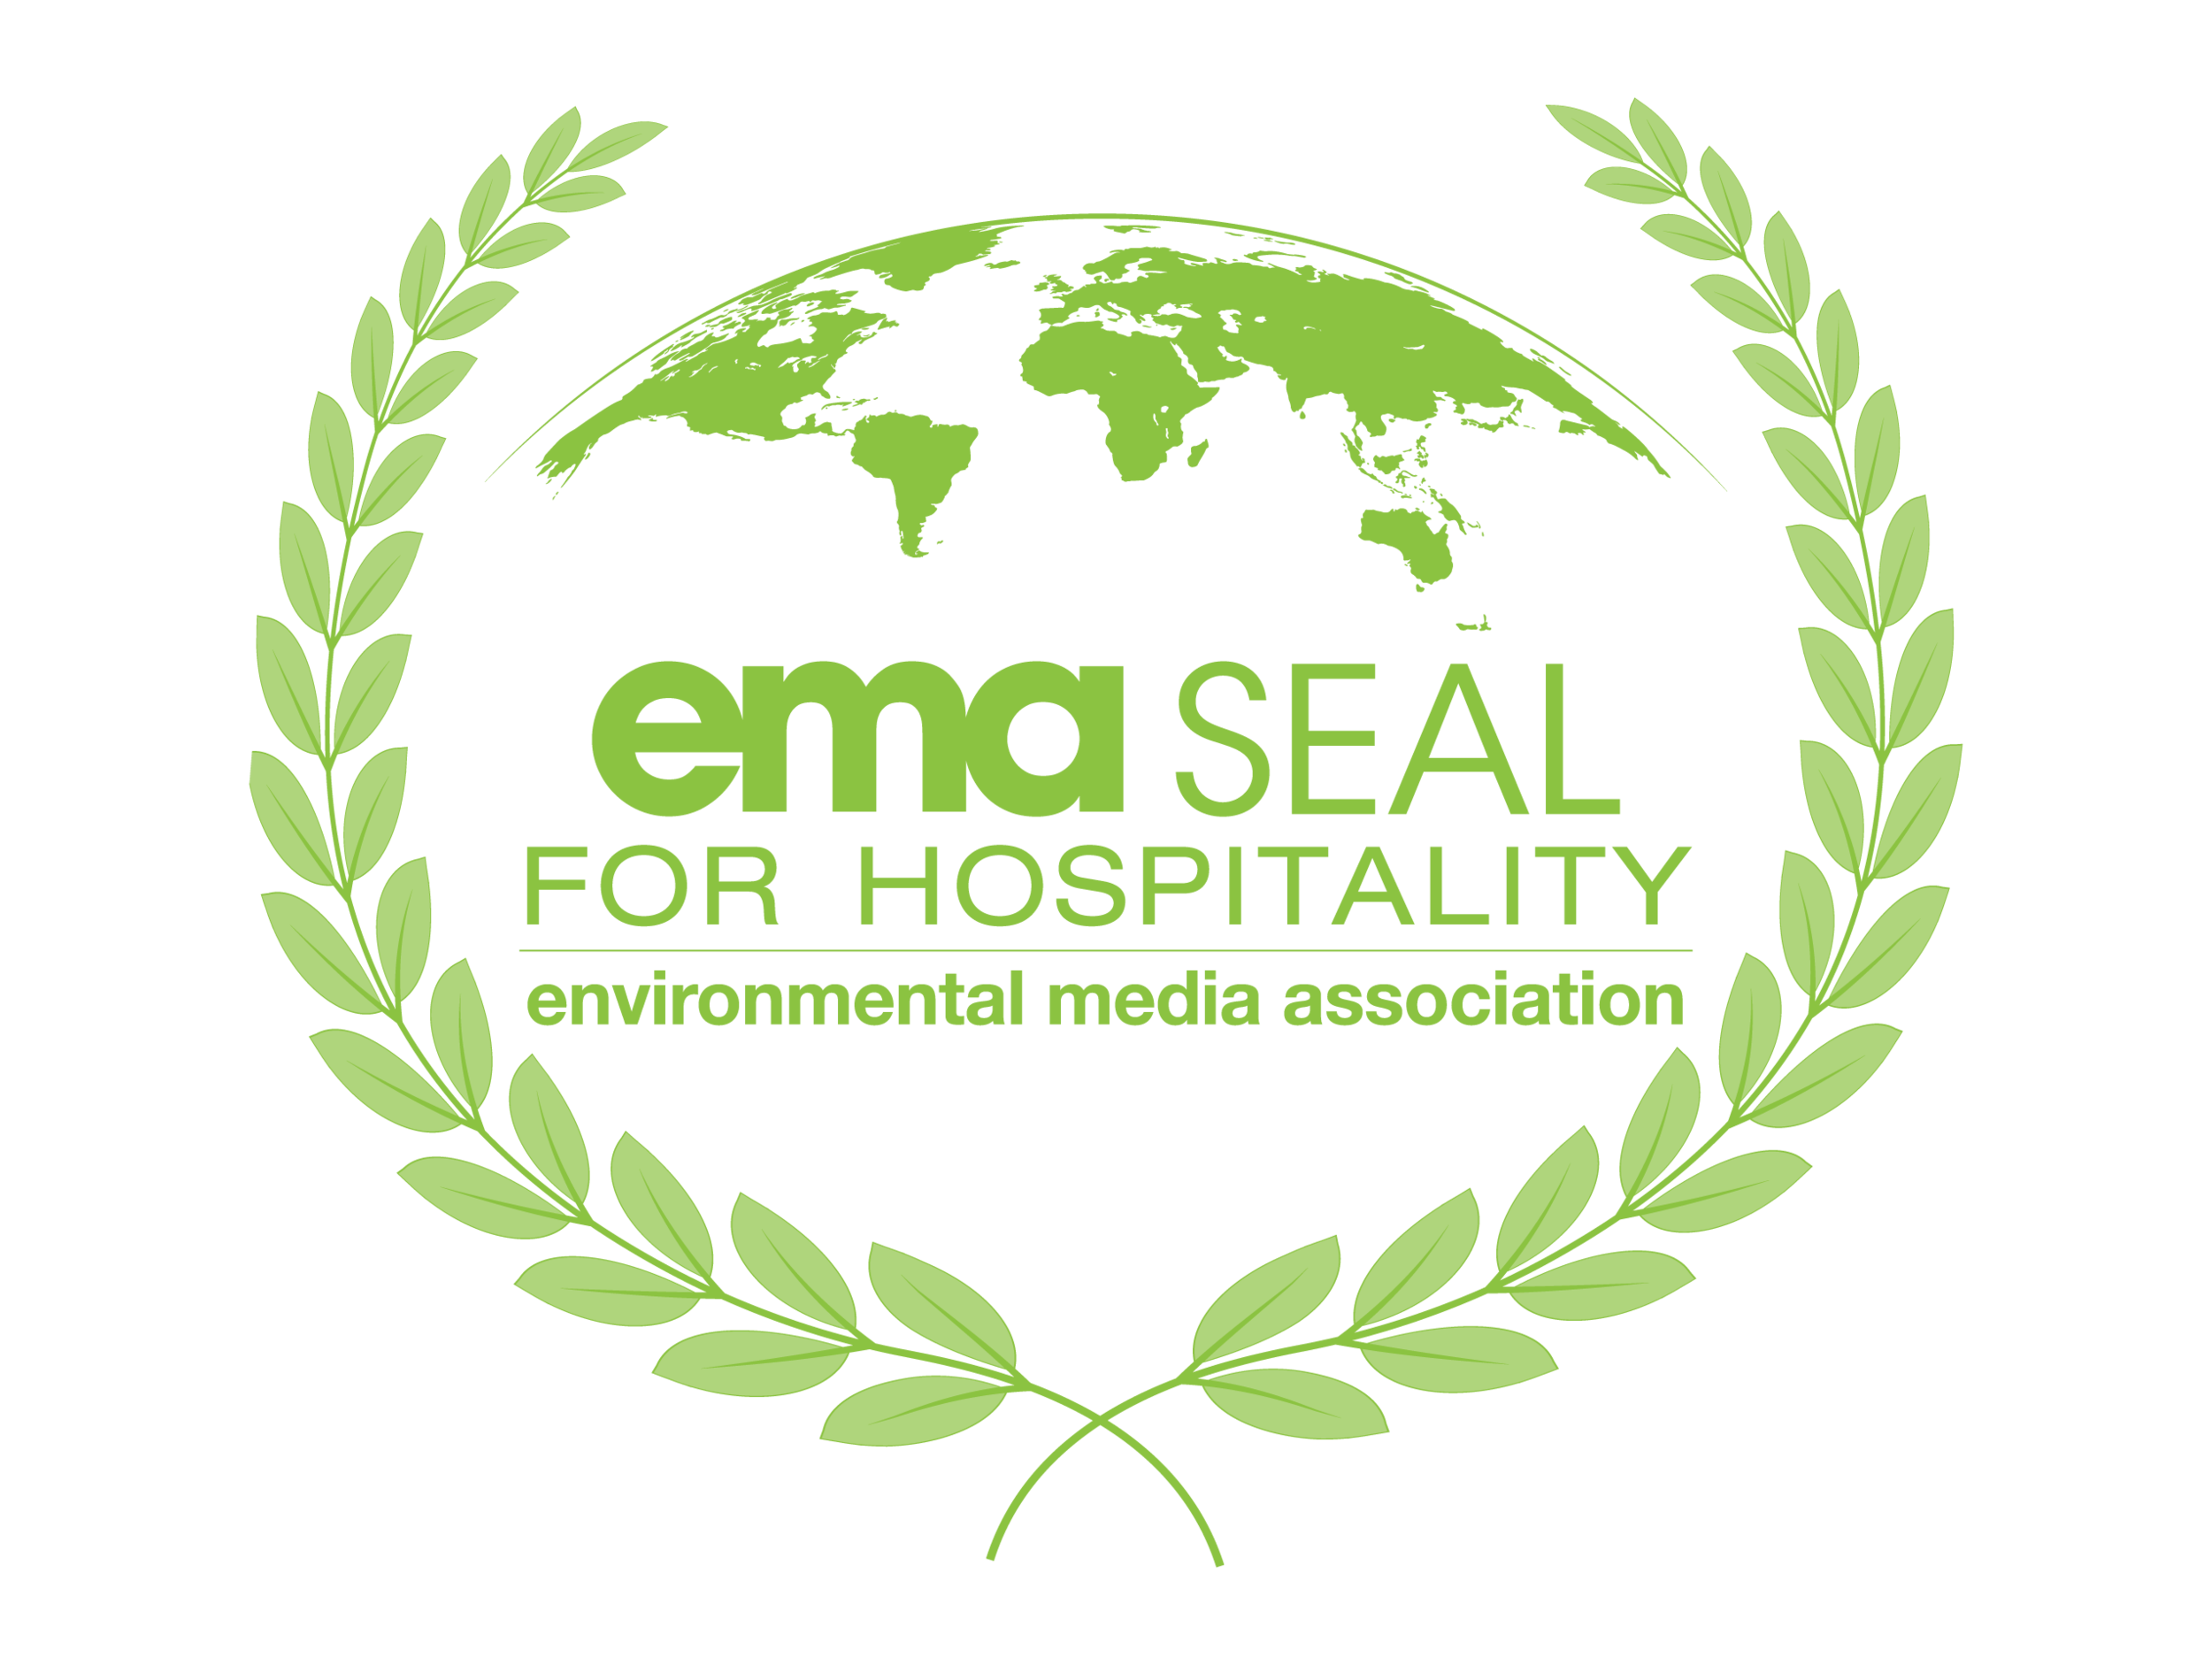 ema_seal_for_hospitality-grn.png